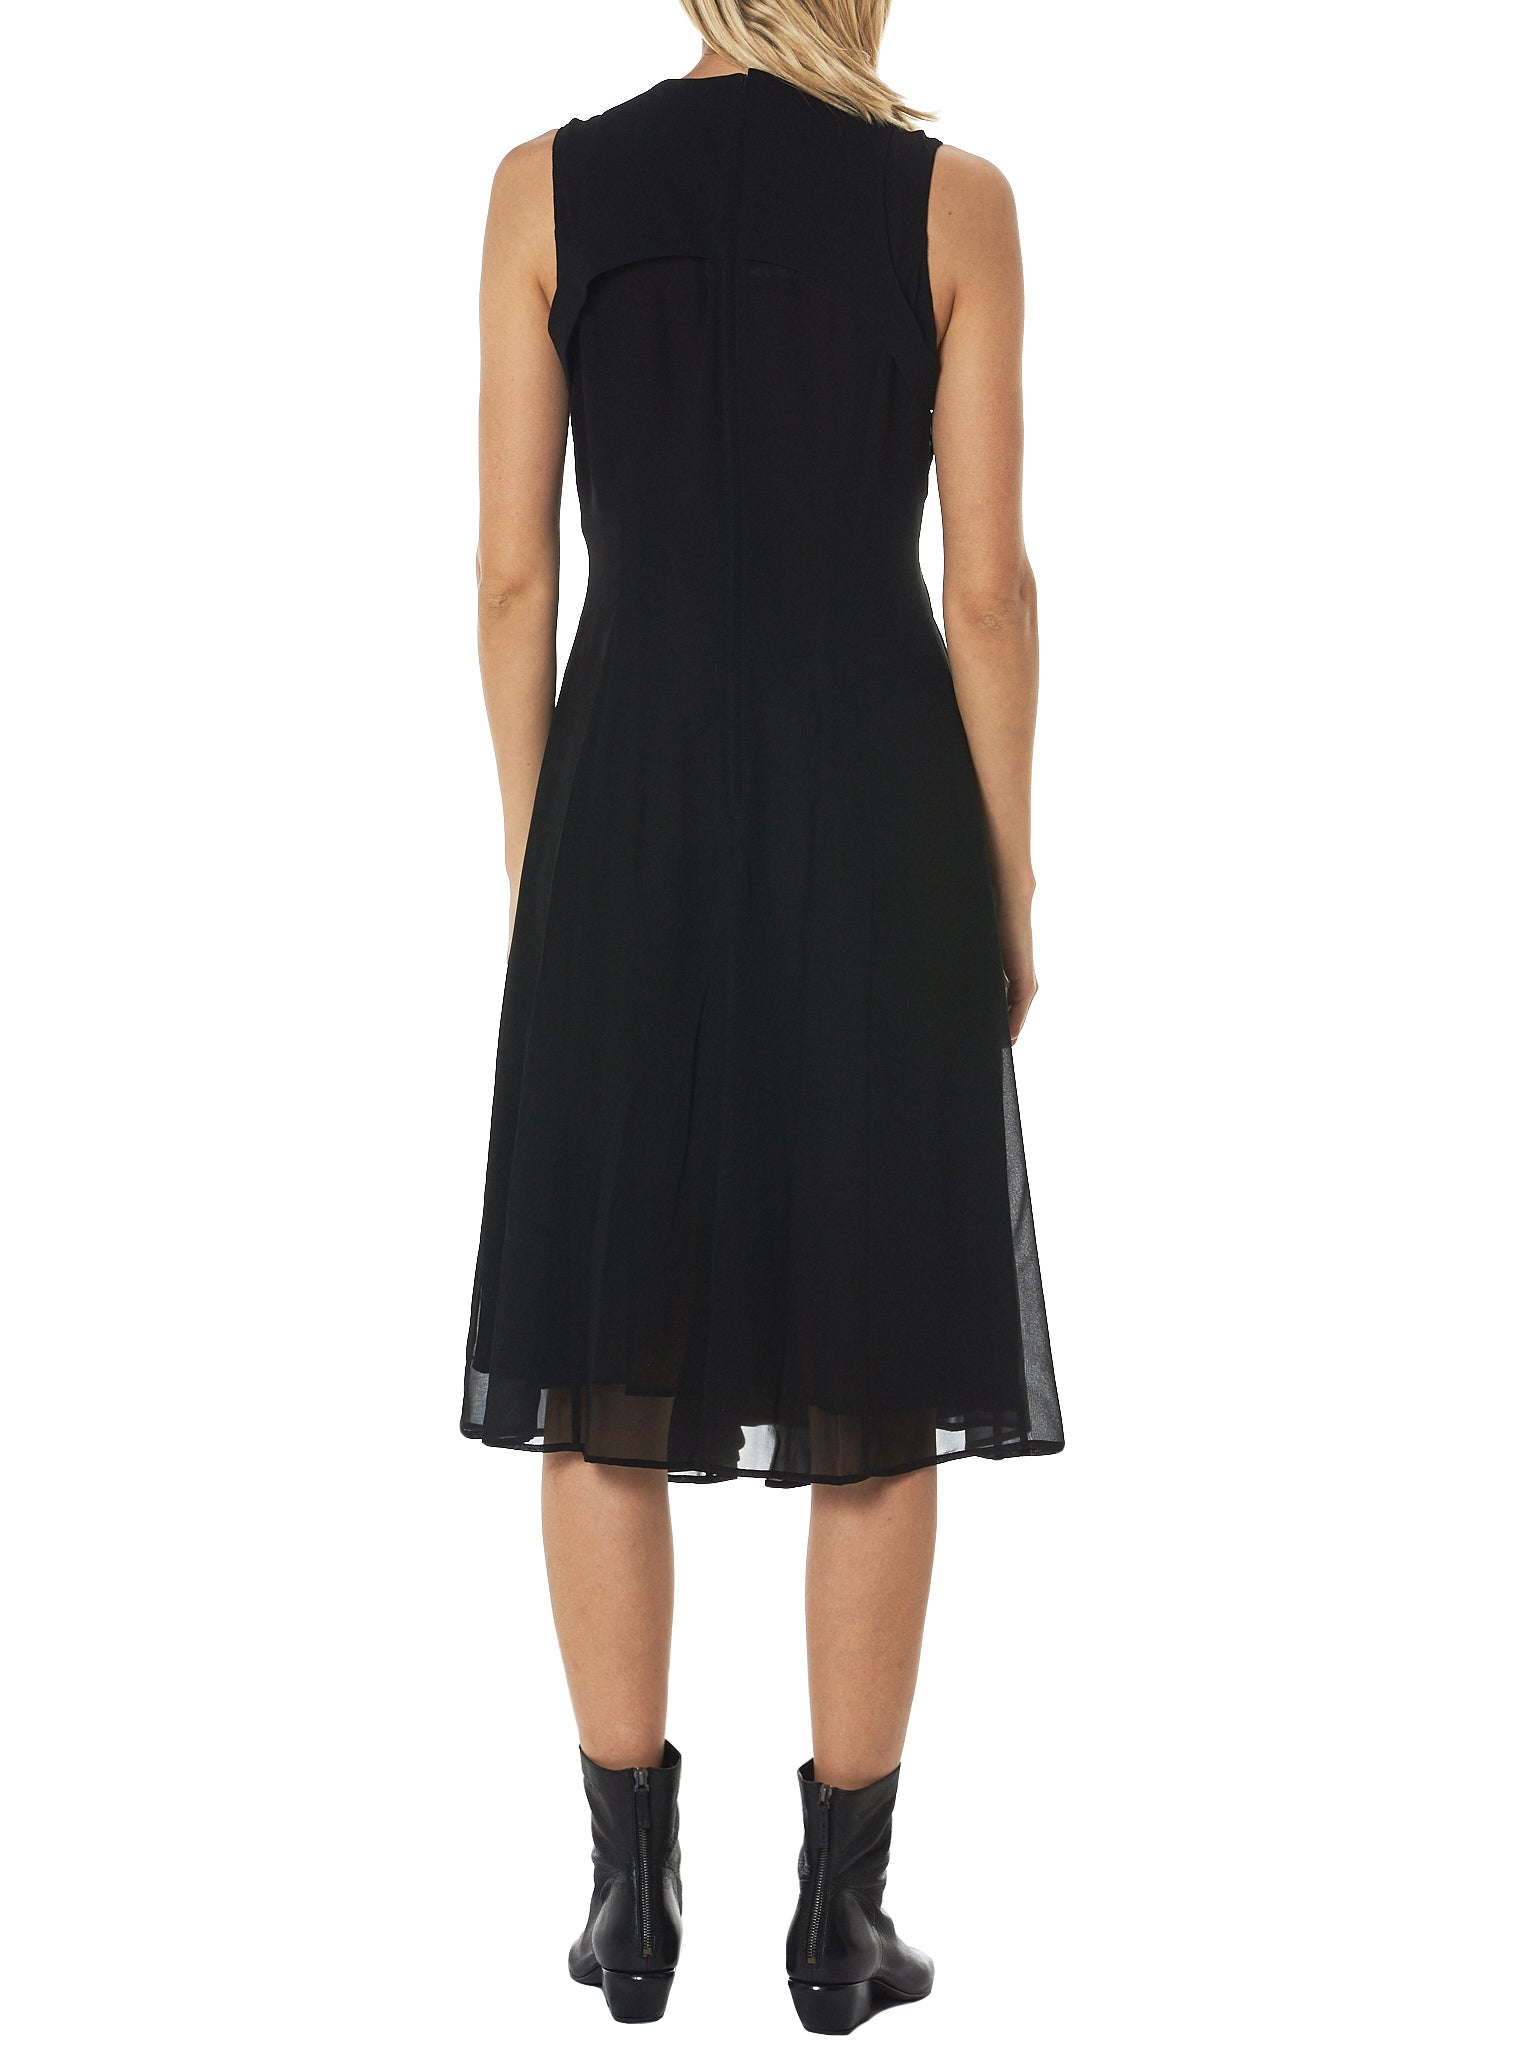 Noir by Kei Ninomiya Sleeveless Dress - Hlorenzo Back